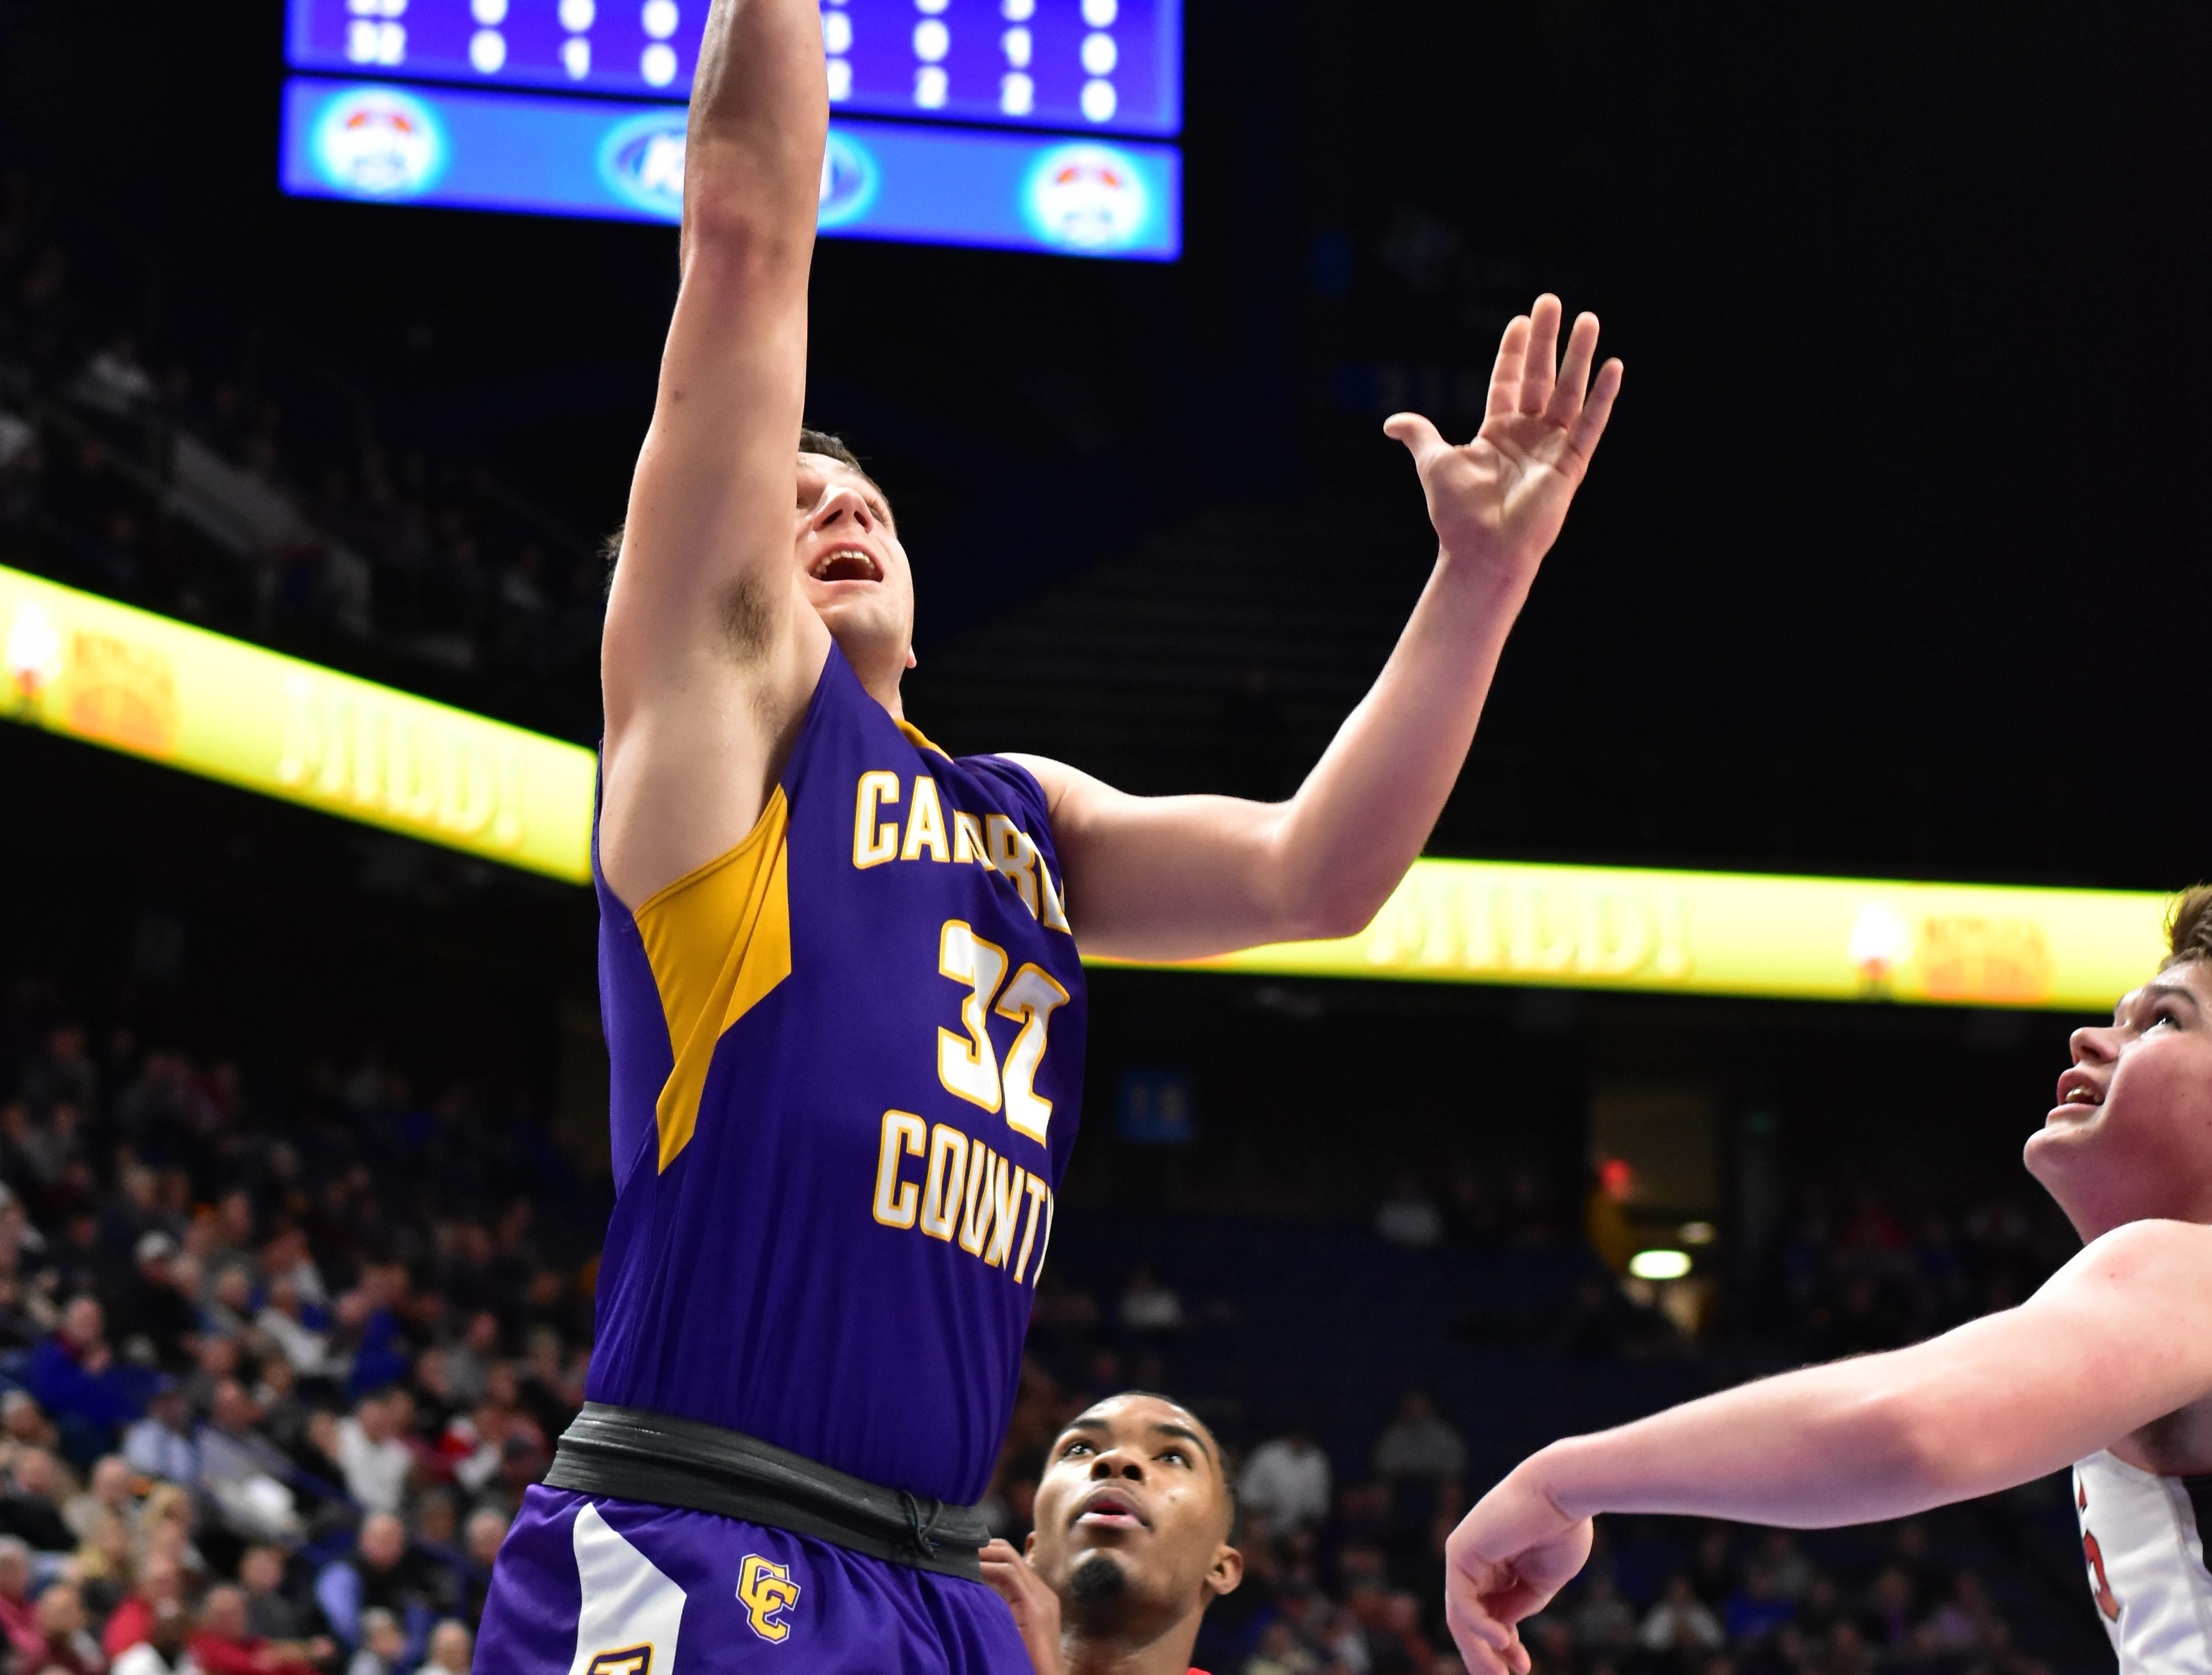 Tanner Lawrence lifts back an offensive rebound for points for Campbell County at the KHSAA Sweet 16 Tournament at Rupp Arena in Lexington, KY, March 6, 2019